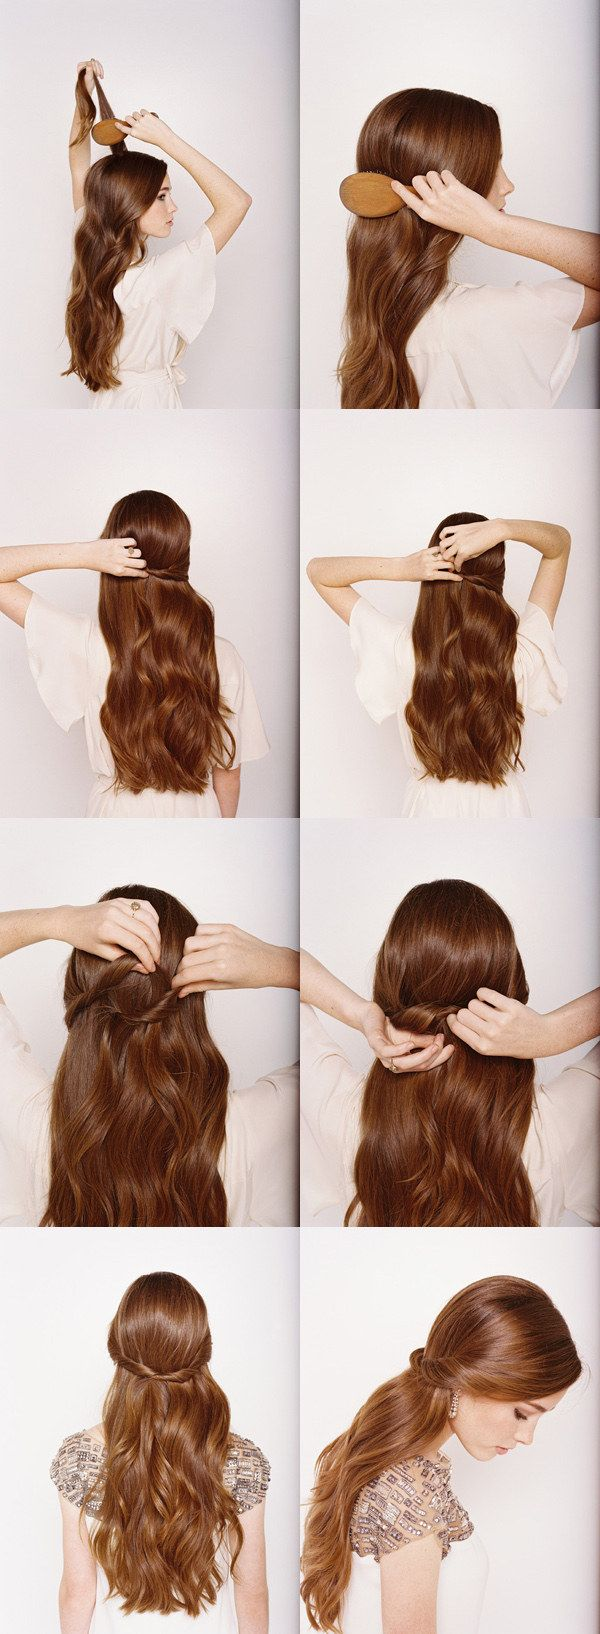 The best images about peinados on pinterest ginger hair senior